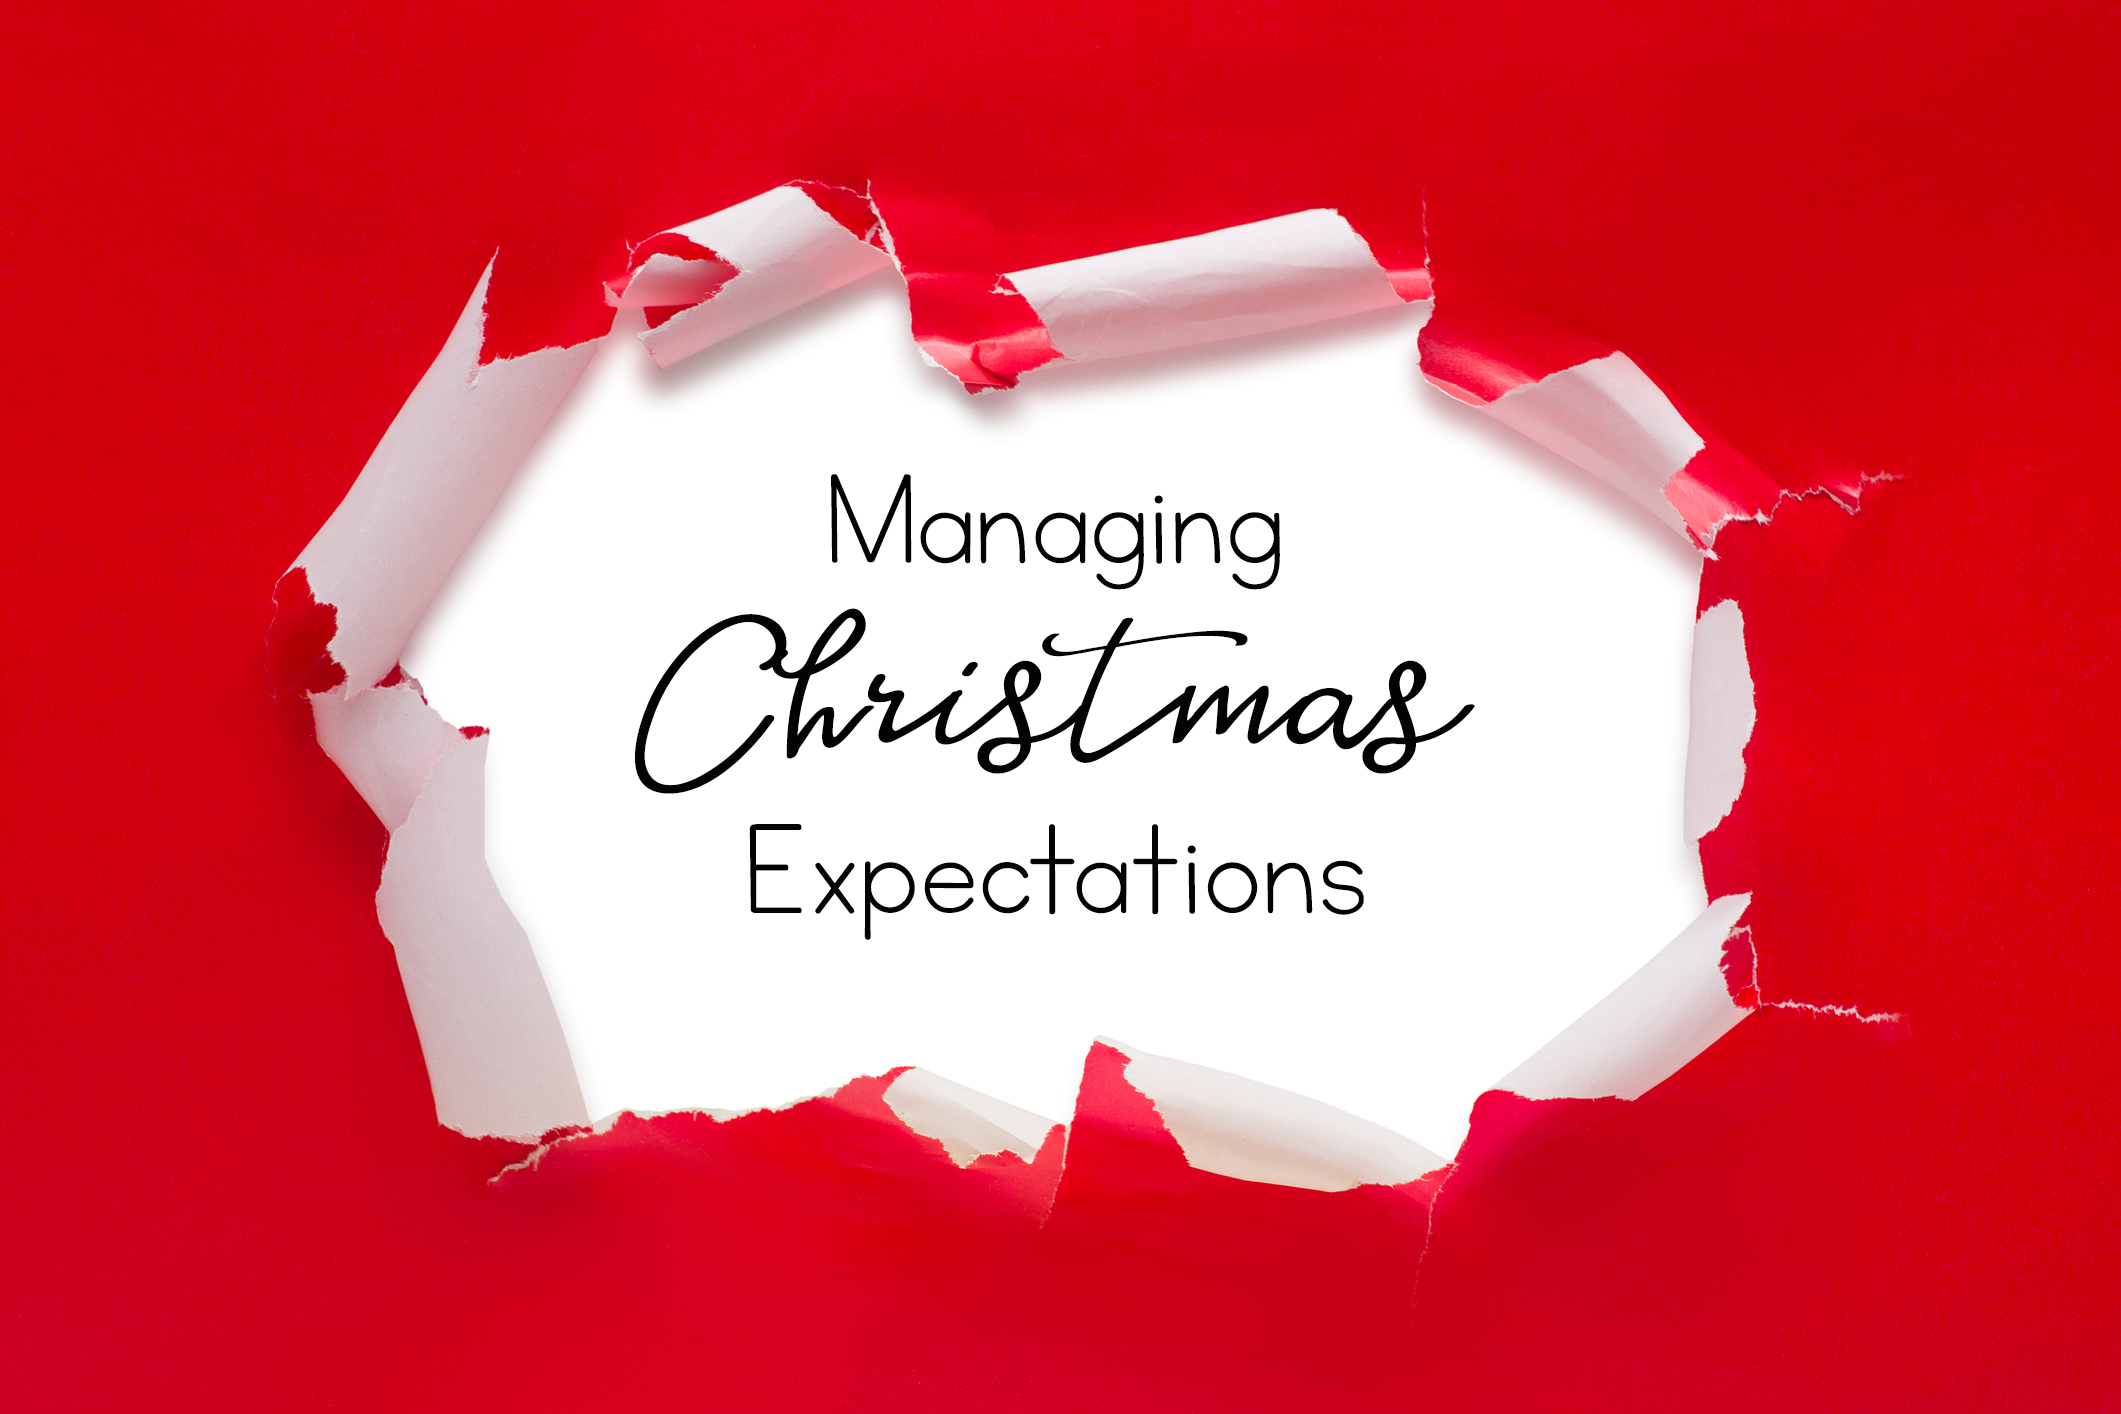 words Managing Christmas Expectations behind red wrapping paper